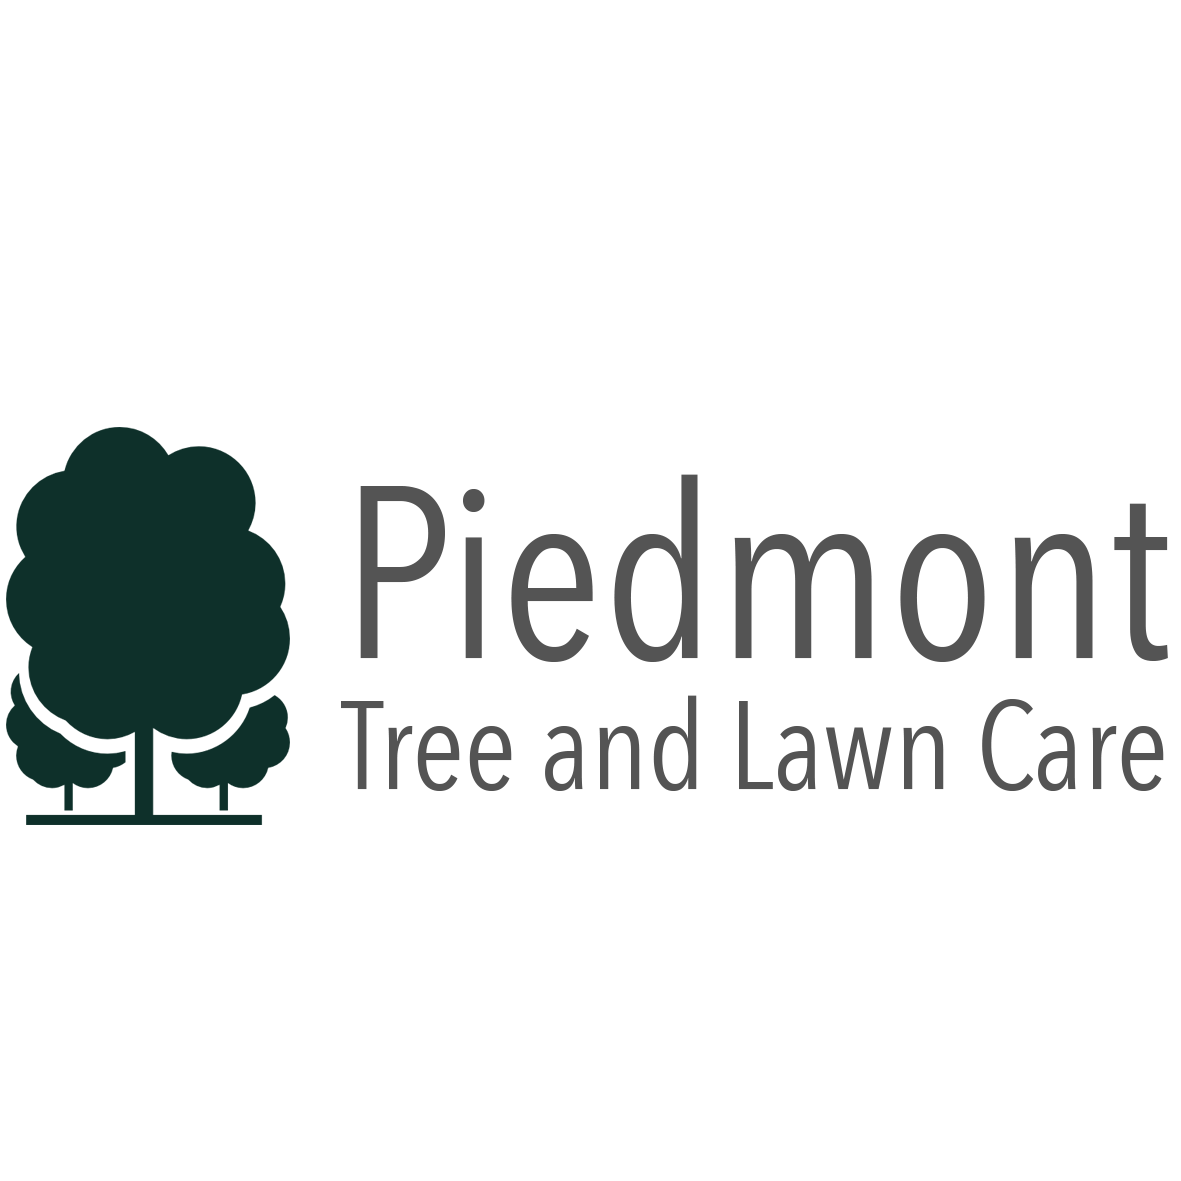 Piedmont Tree and Lawn Care